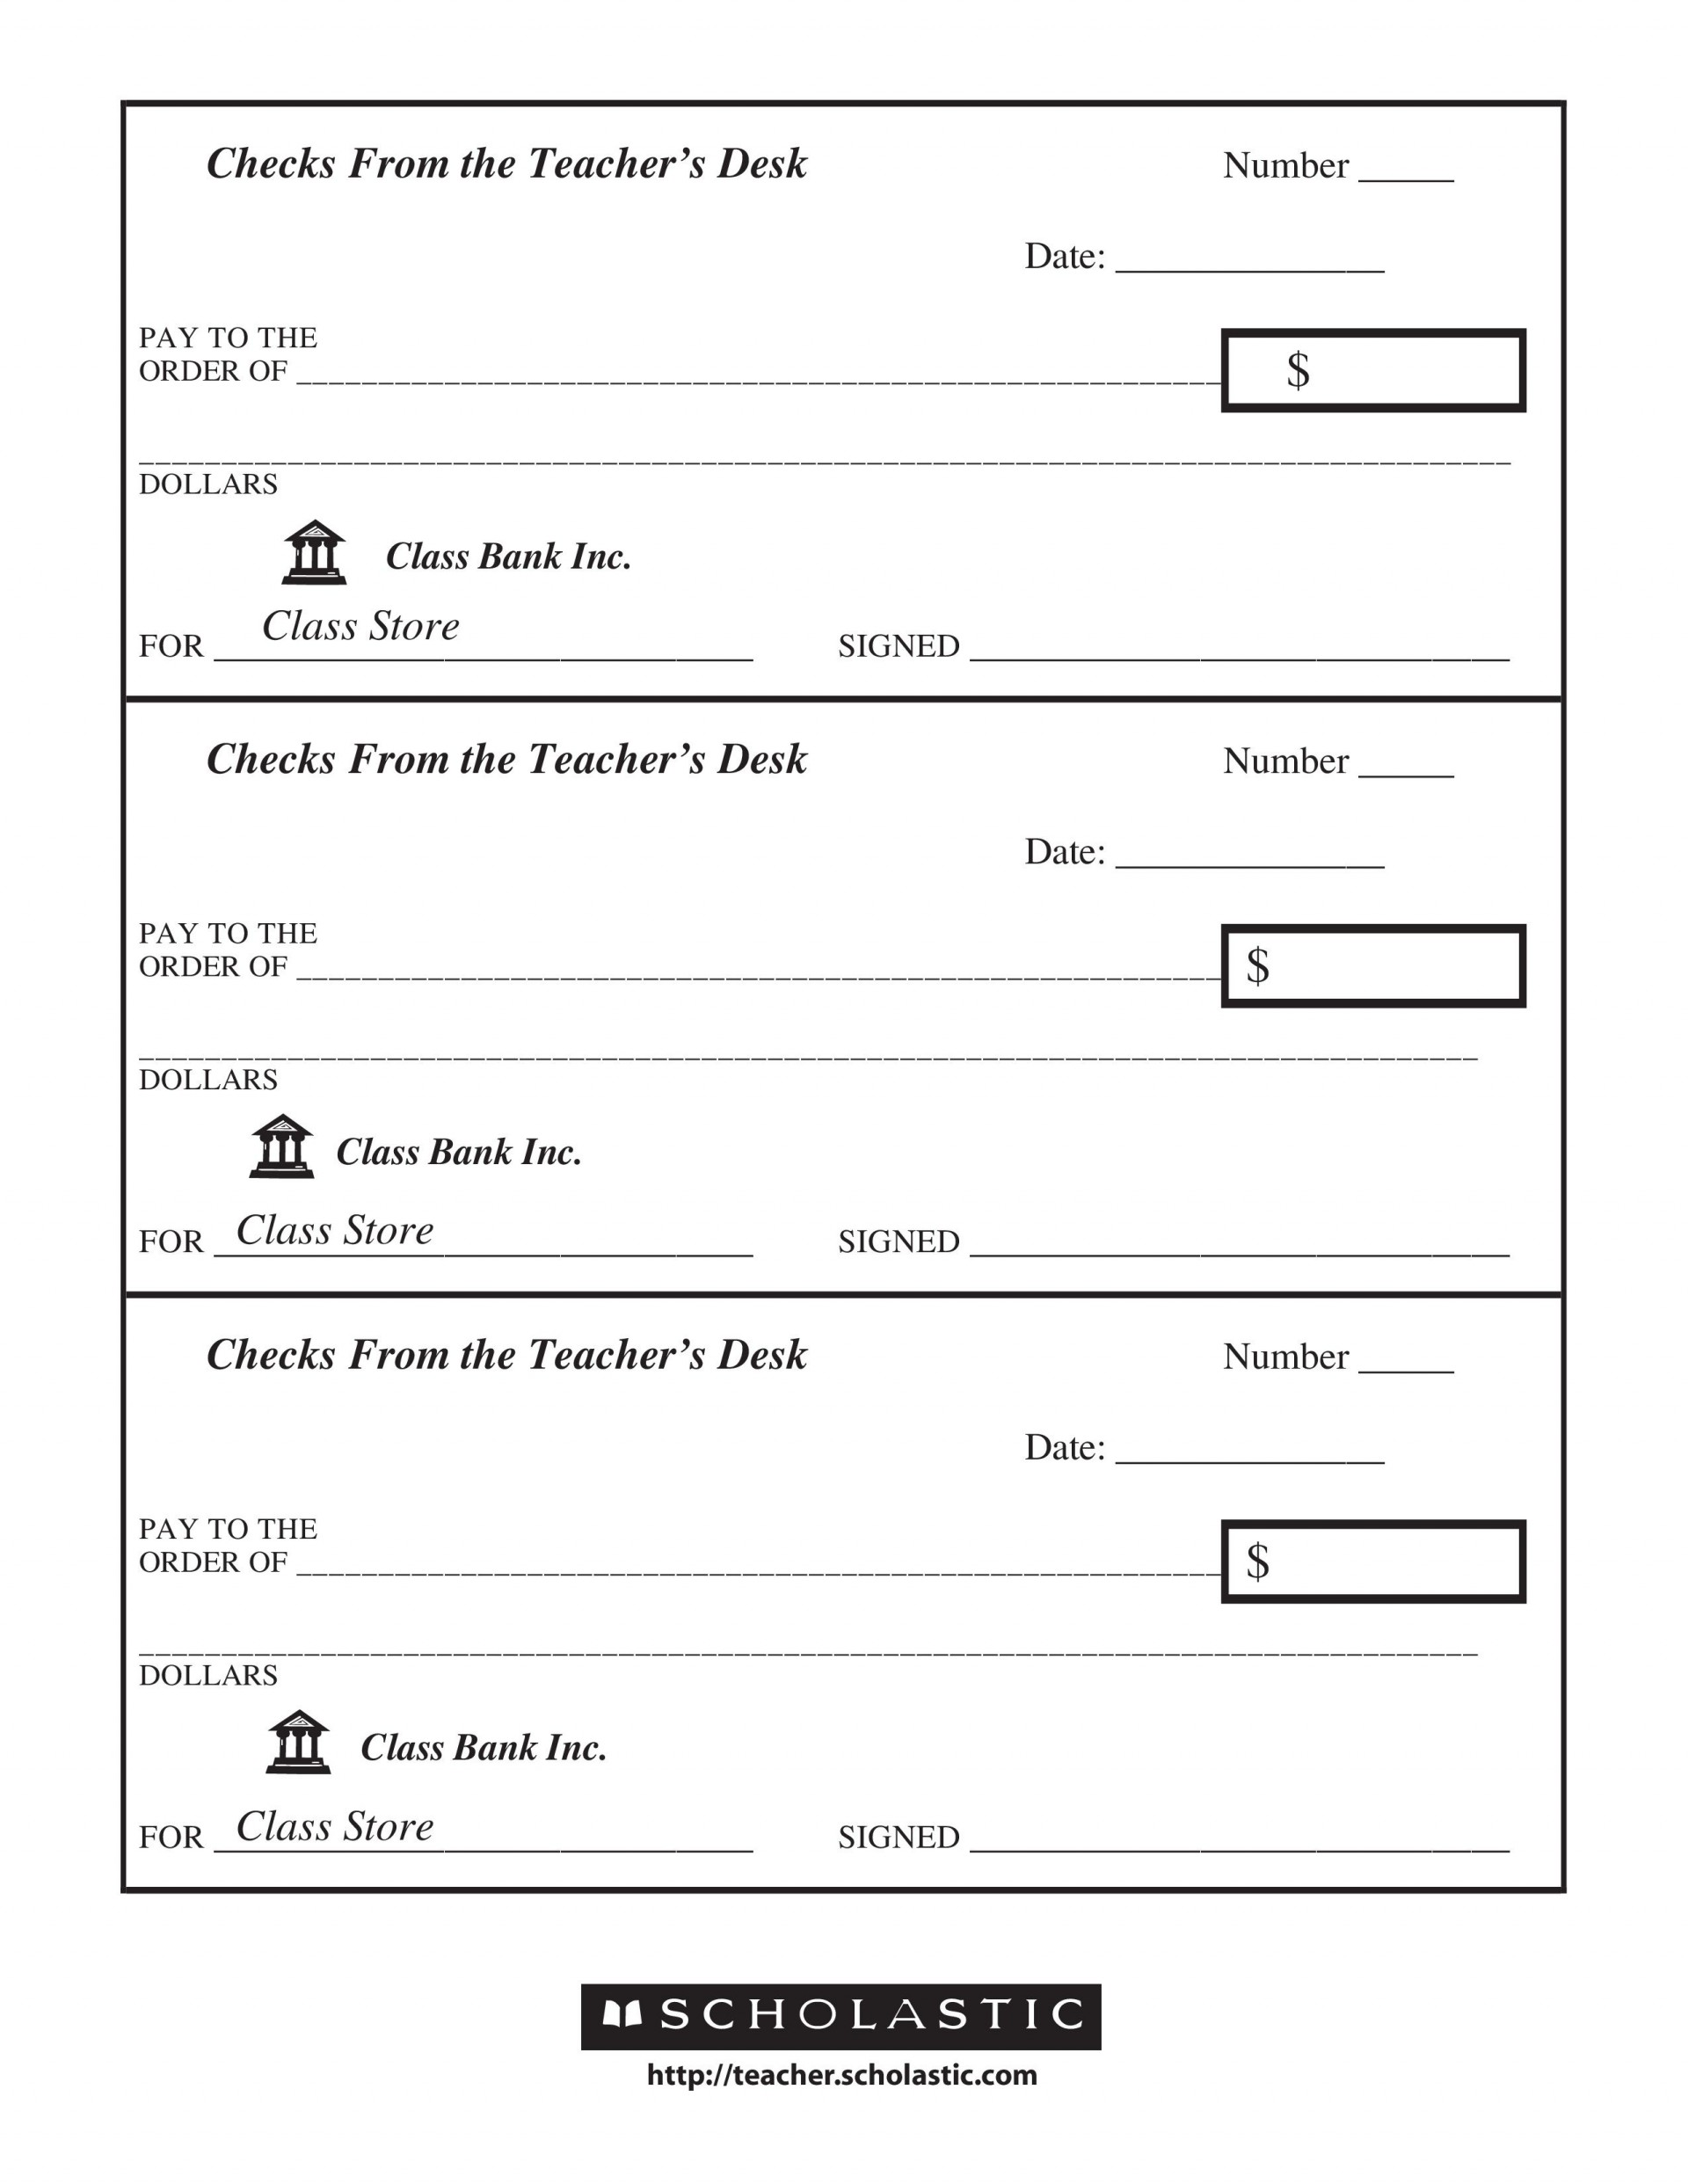 008 Staggering Quickbook Check Template Word Sample 1920